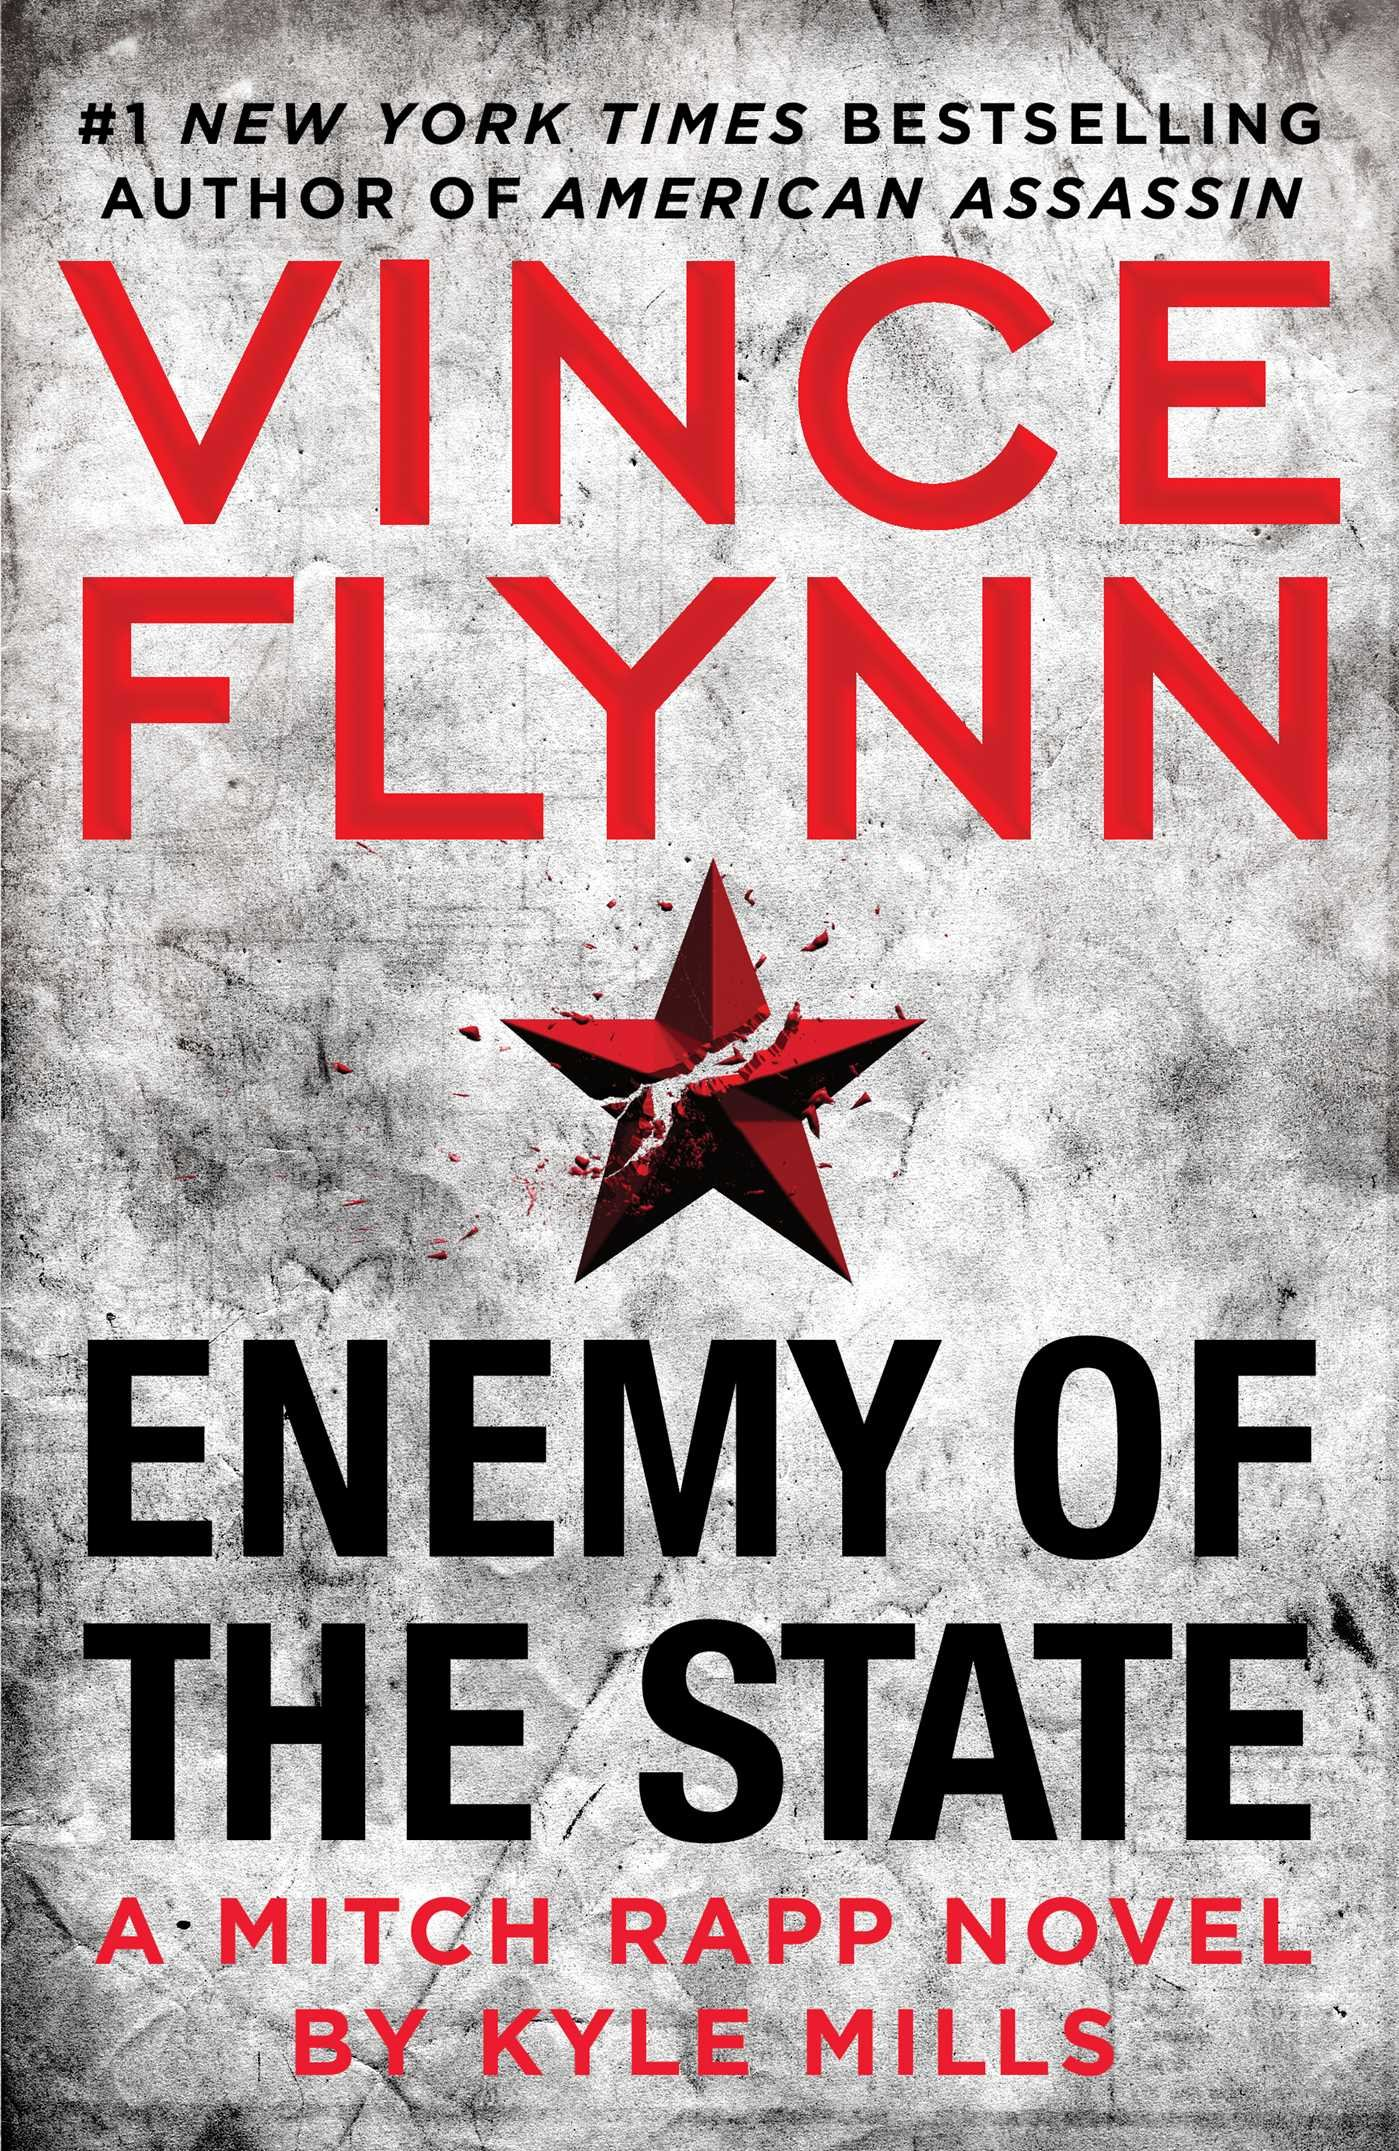 vince flynn books in chronological order